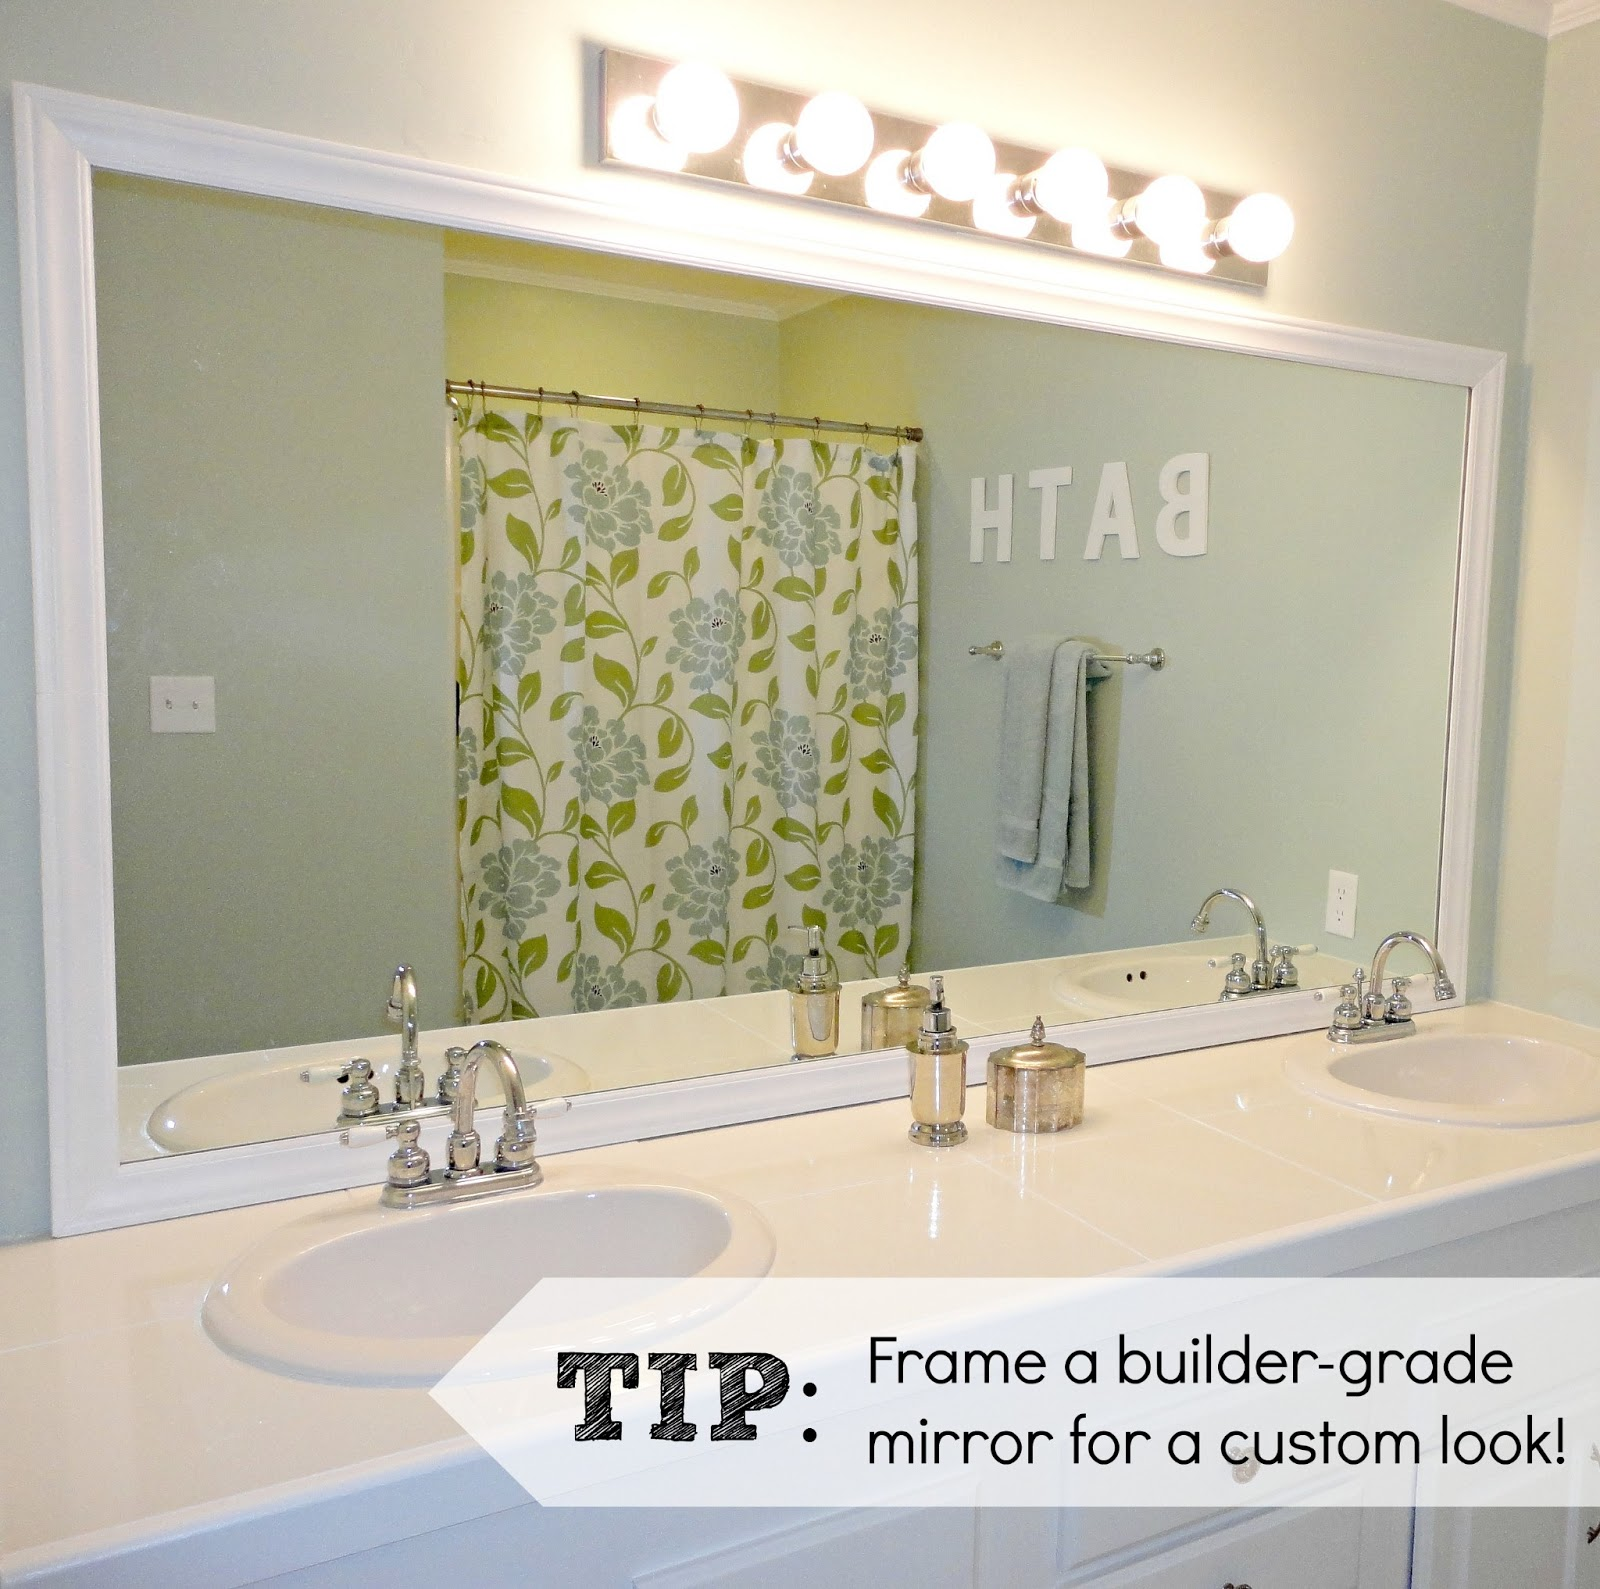 Livelovediy easy diy ideas for updating your bathroom here is the finished mirror all framed in after we glued the frame to the mirror i caulked the gaps and painted the entire frame white amipublicfo Choice Image